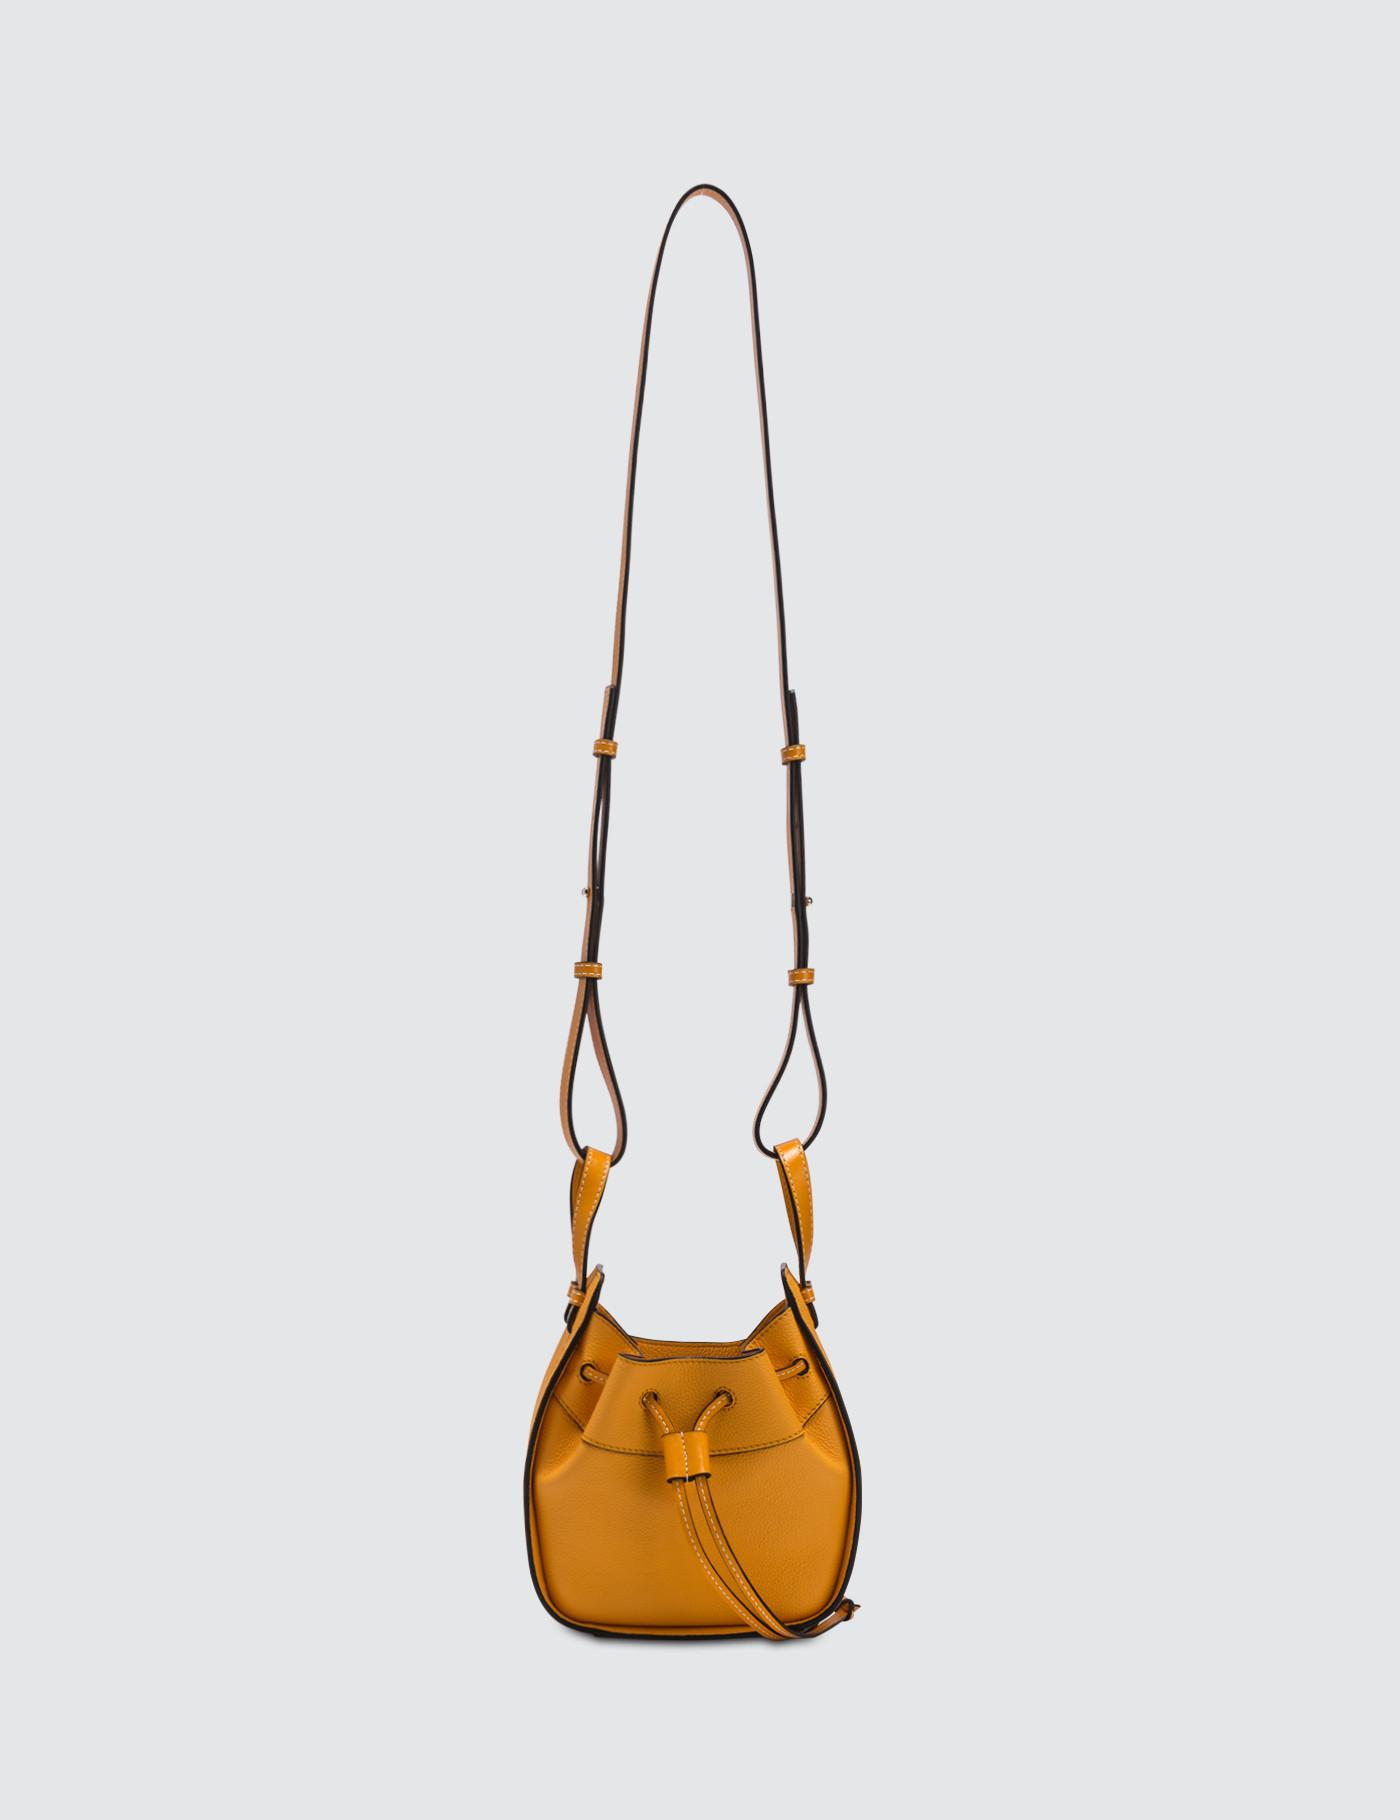 Lyst - Loewe Mini Hammock Bag in Orange 3d76de42e2830